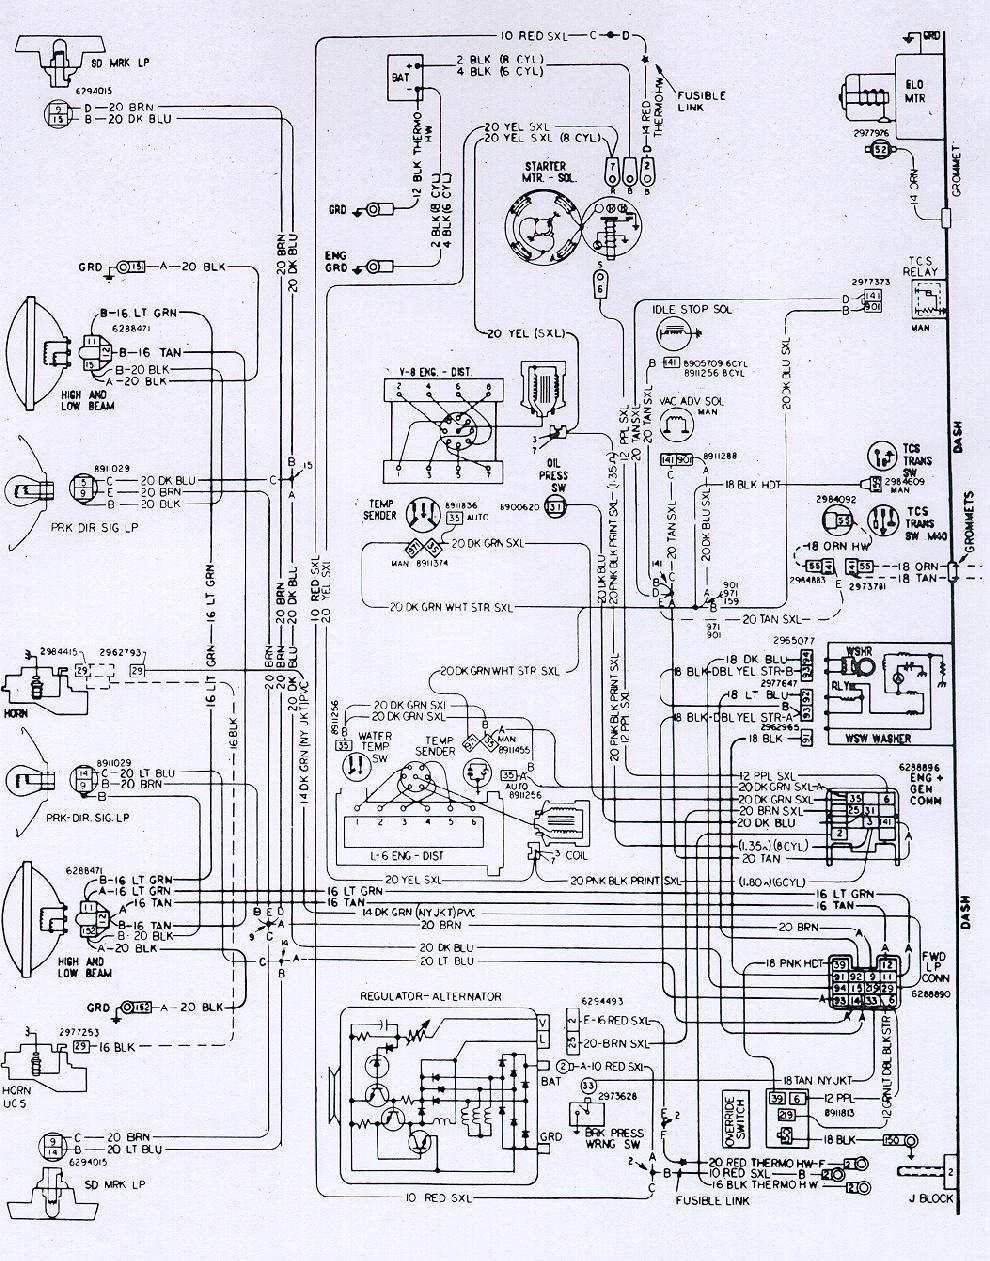 medium resolution of 1972 camaro wiring diagram schematic wiring diagram third level 1986 camaro iroc z28 1972 camaro